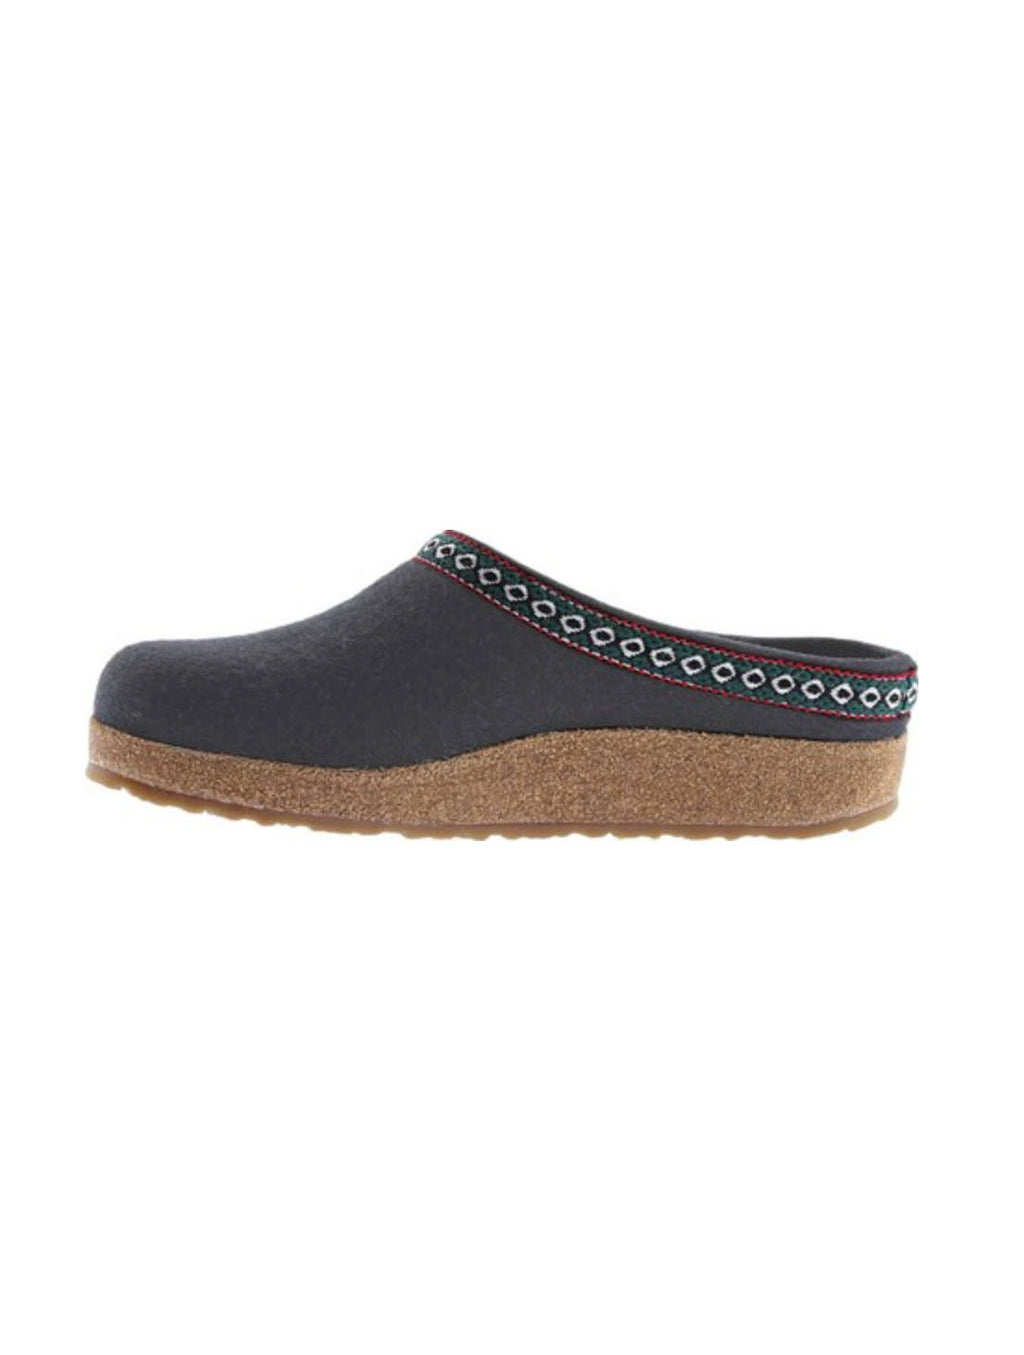 Haflinger Grizzly Wool Clog in Grey